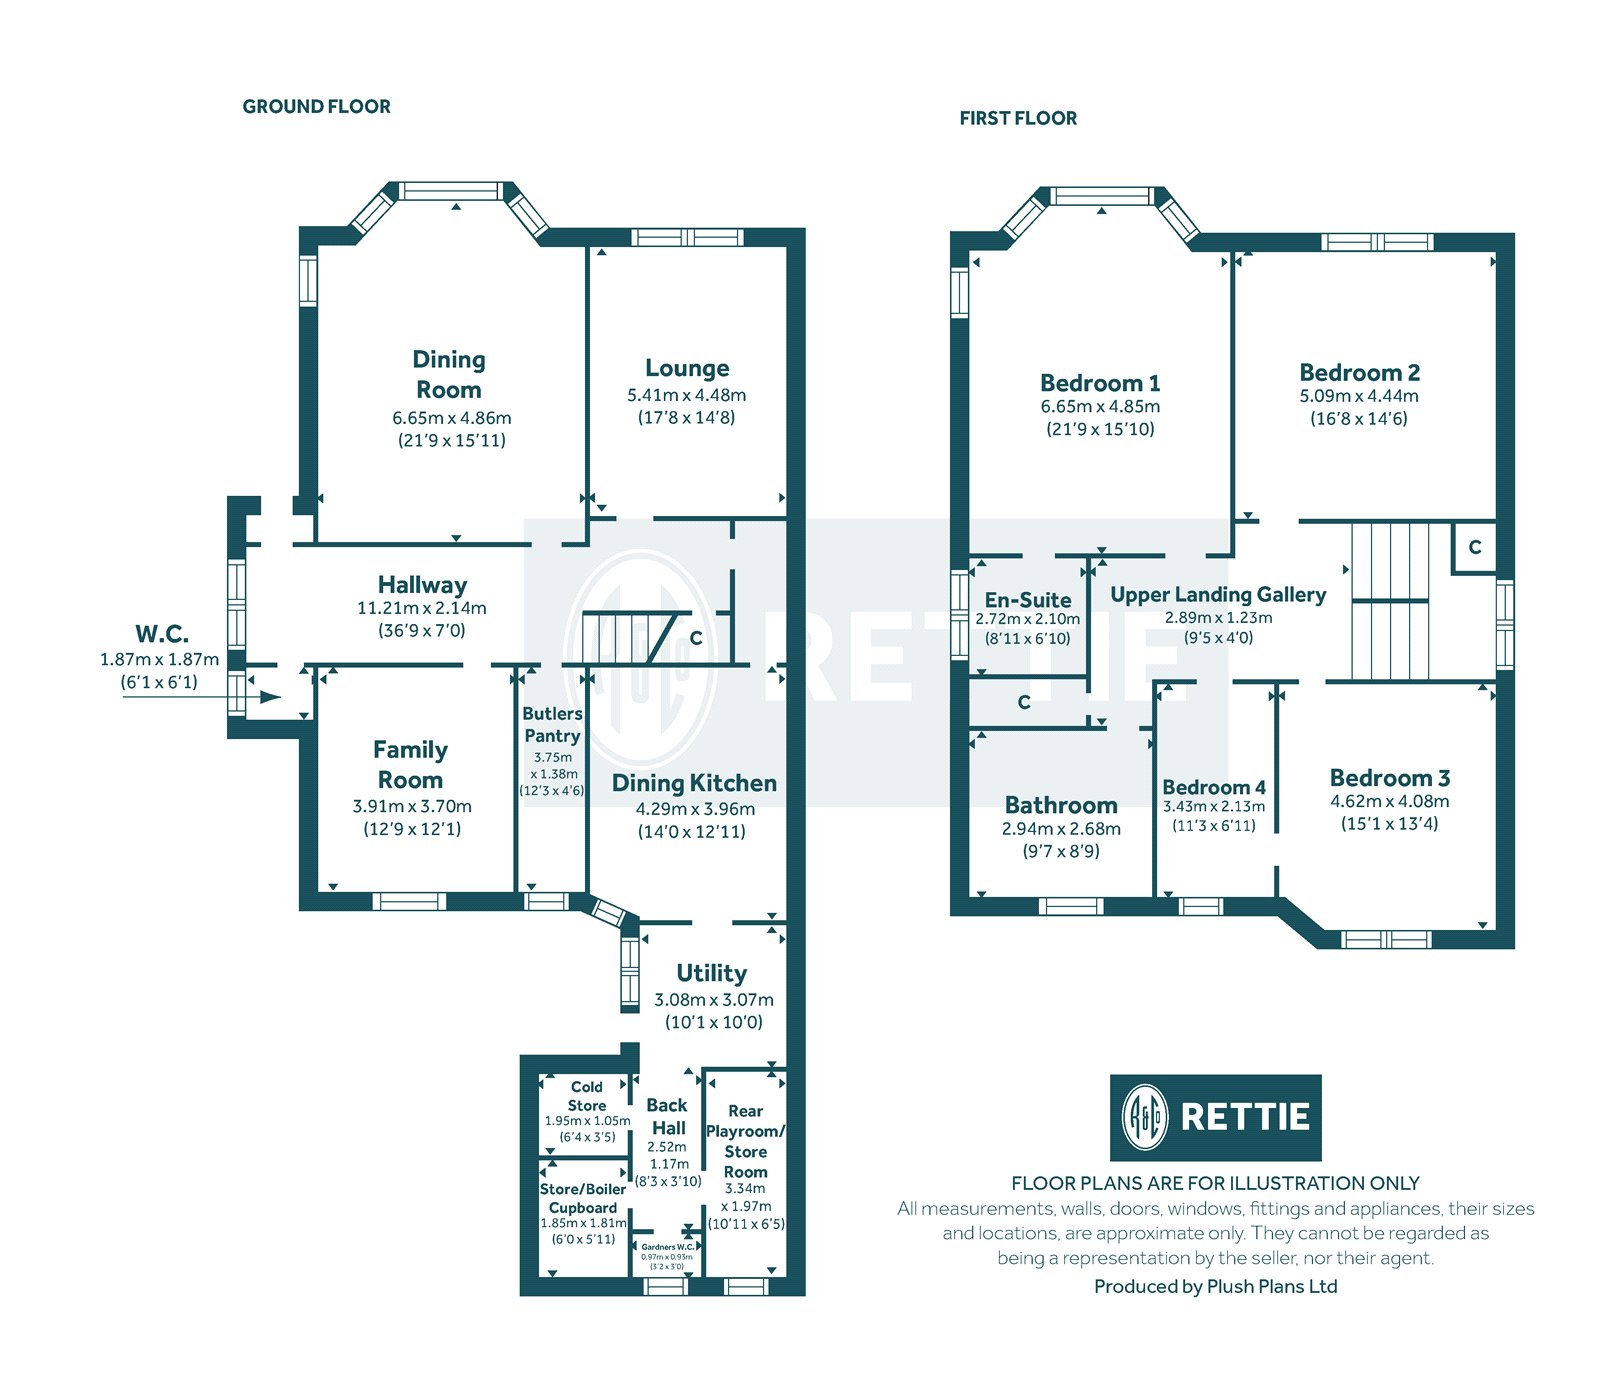 Floorplans for Victoria Park Gardens South, Broomhill, Glasgow, G11